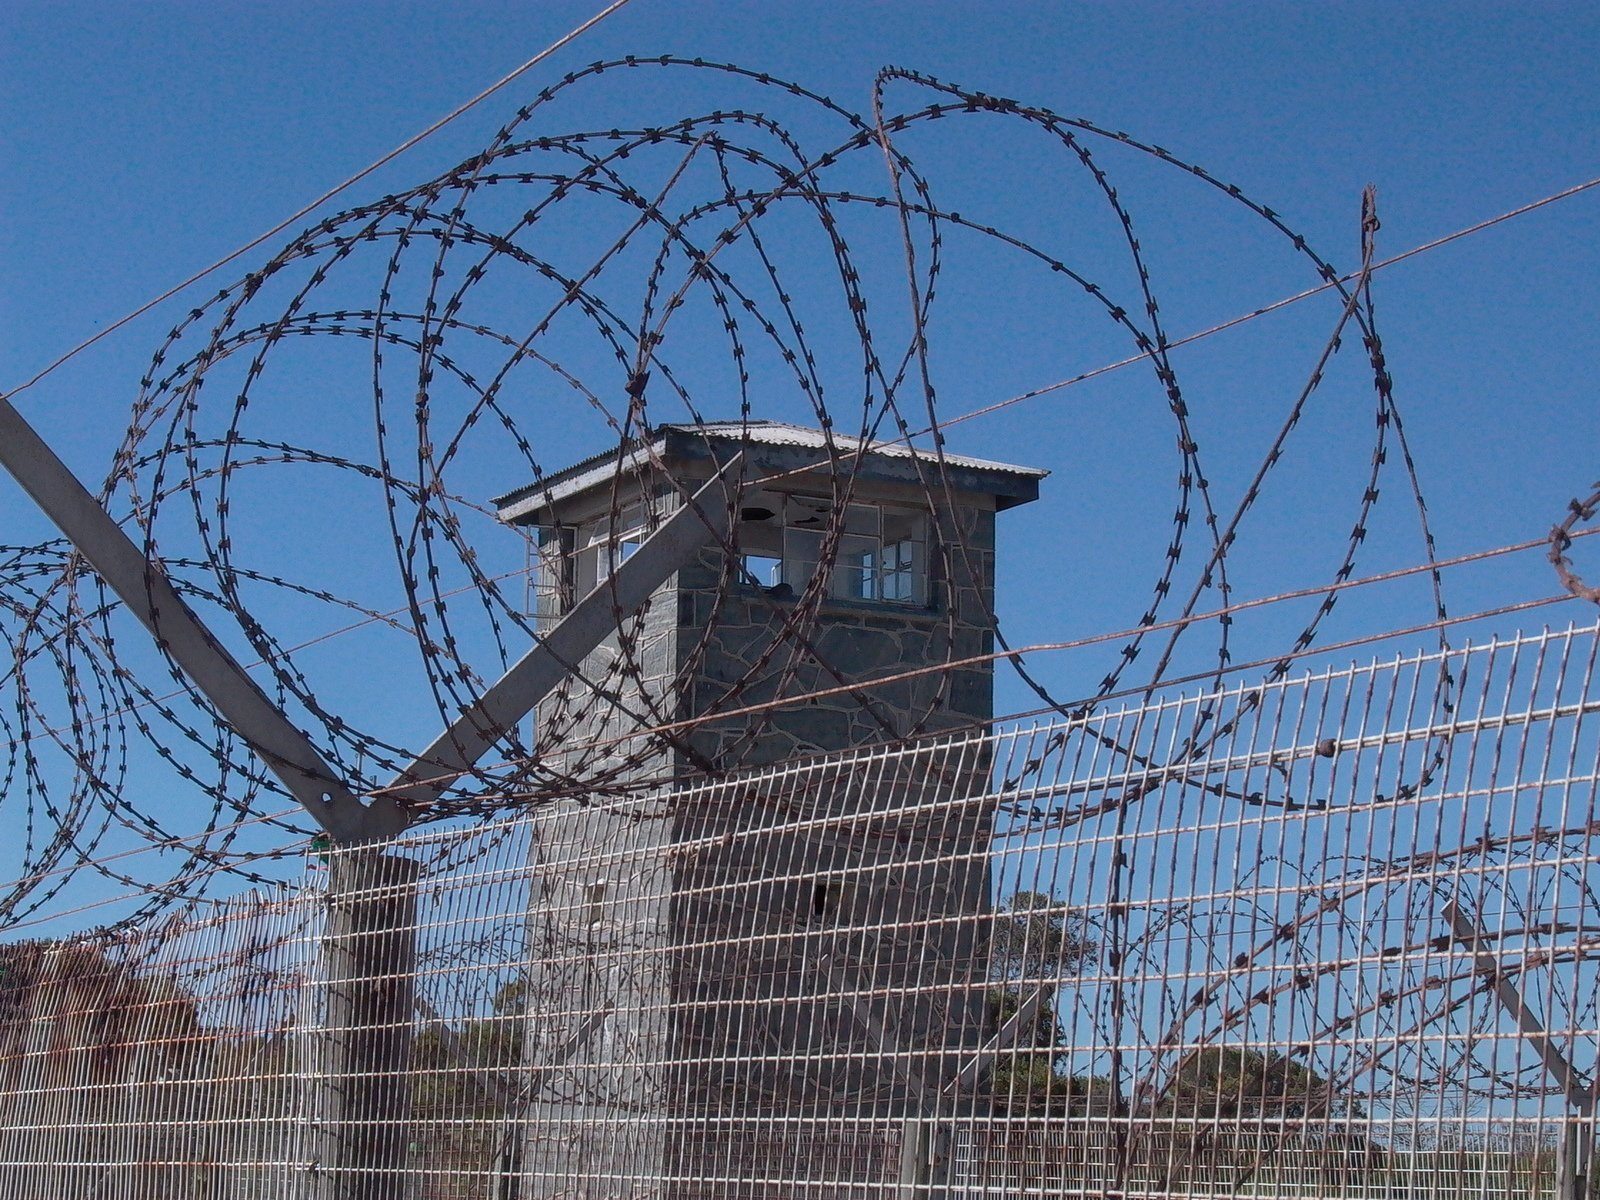 barbed wire around a prison